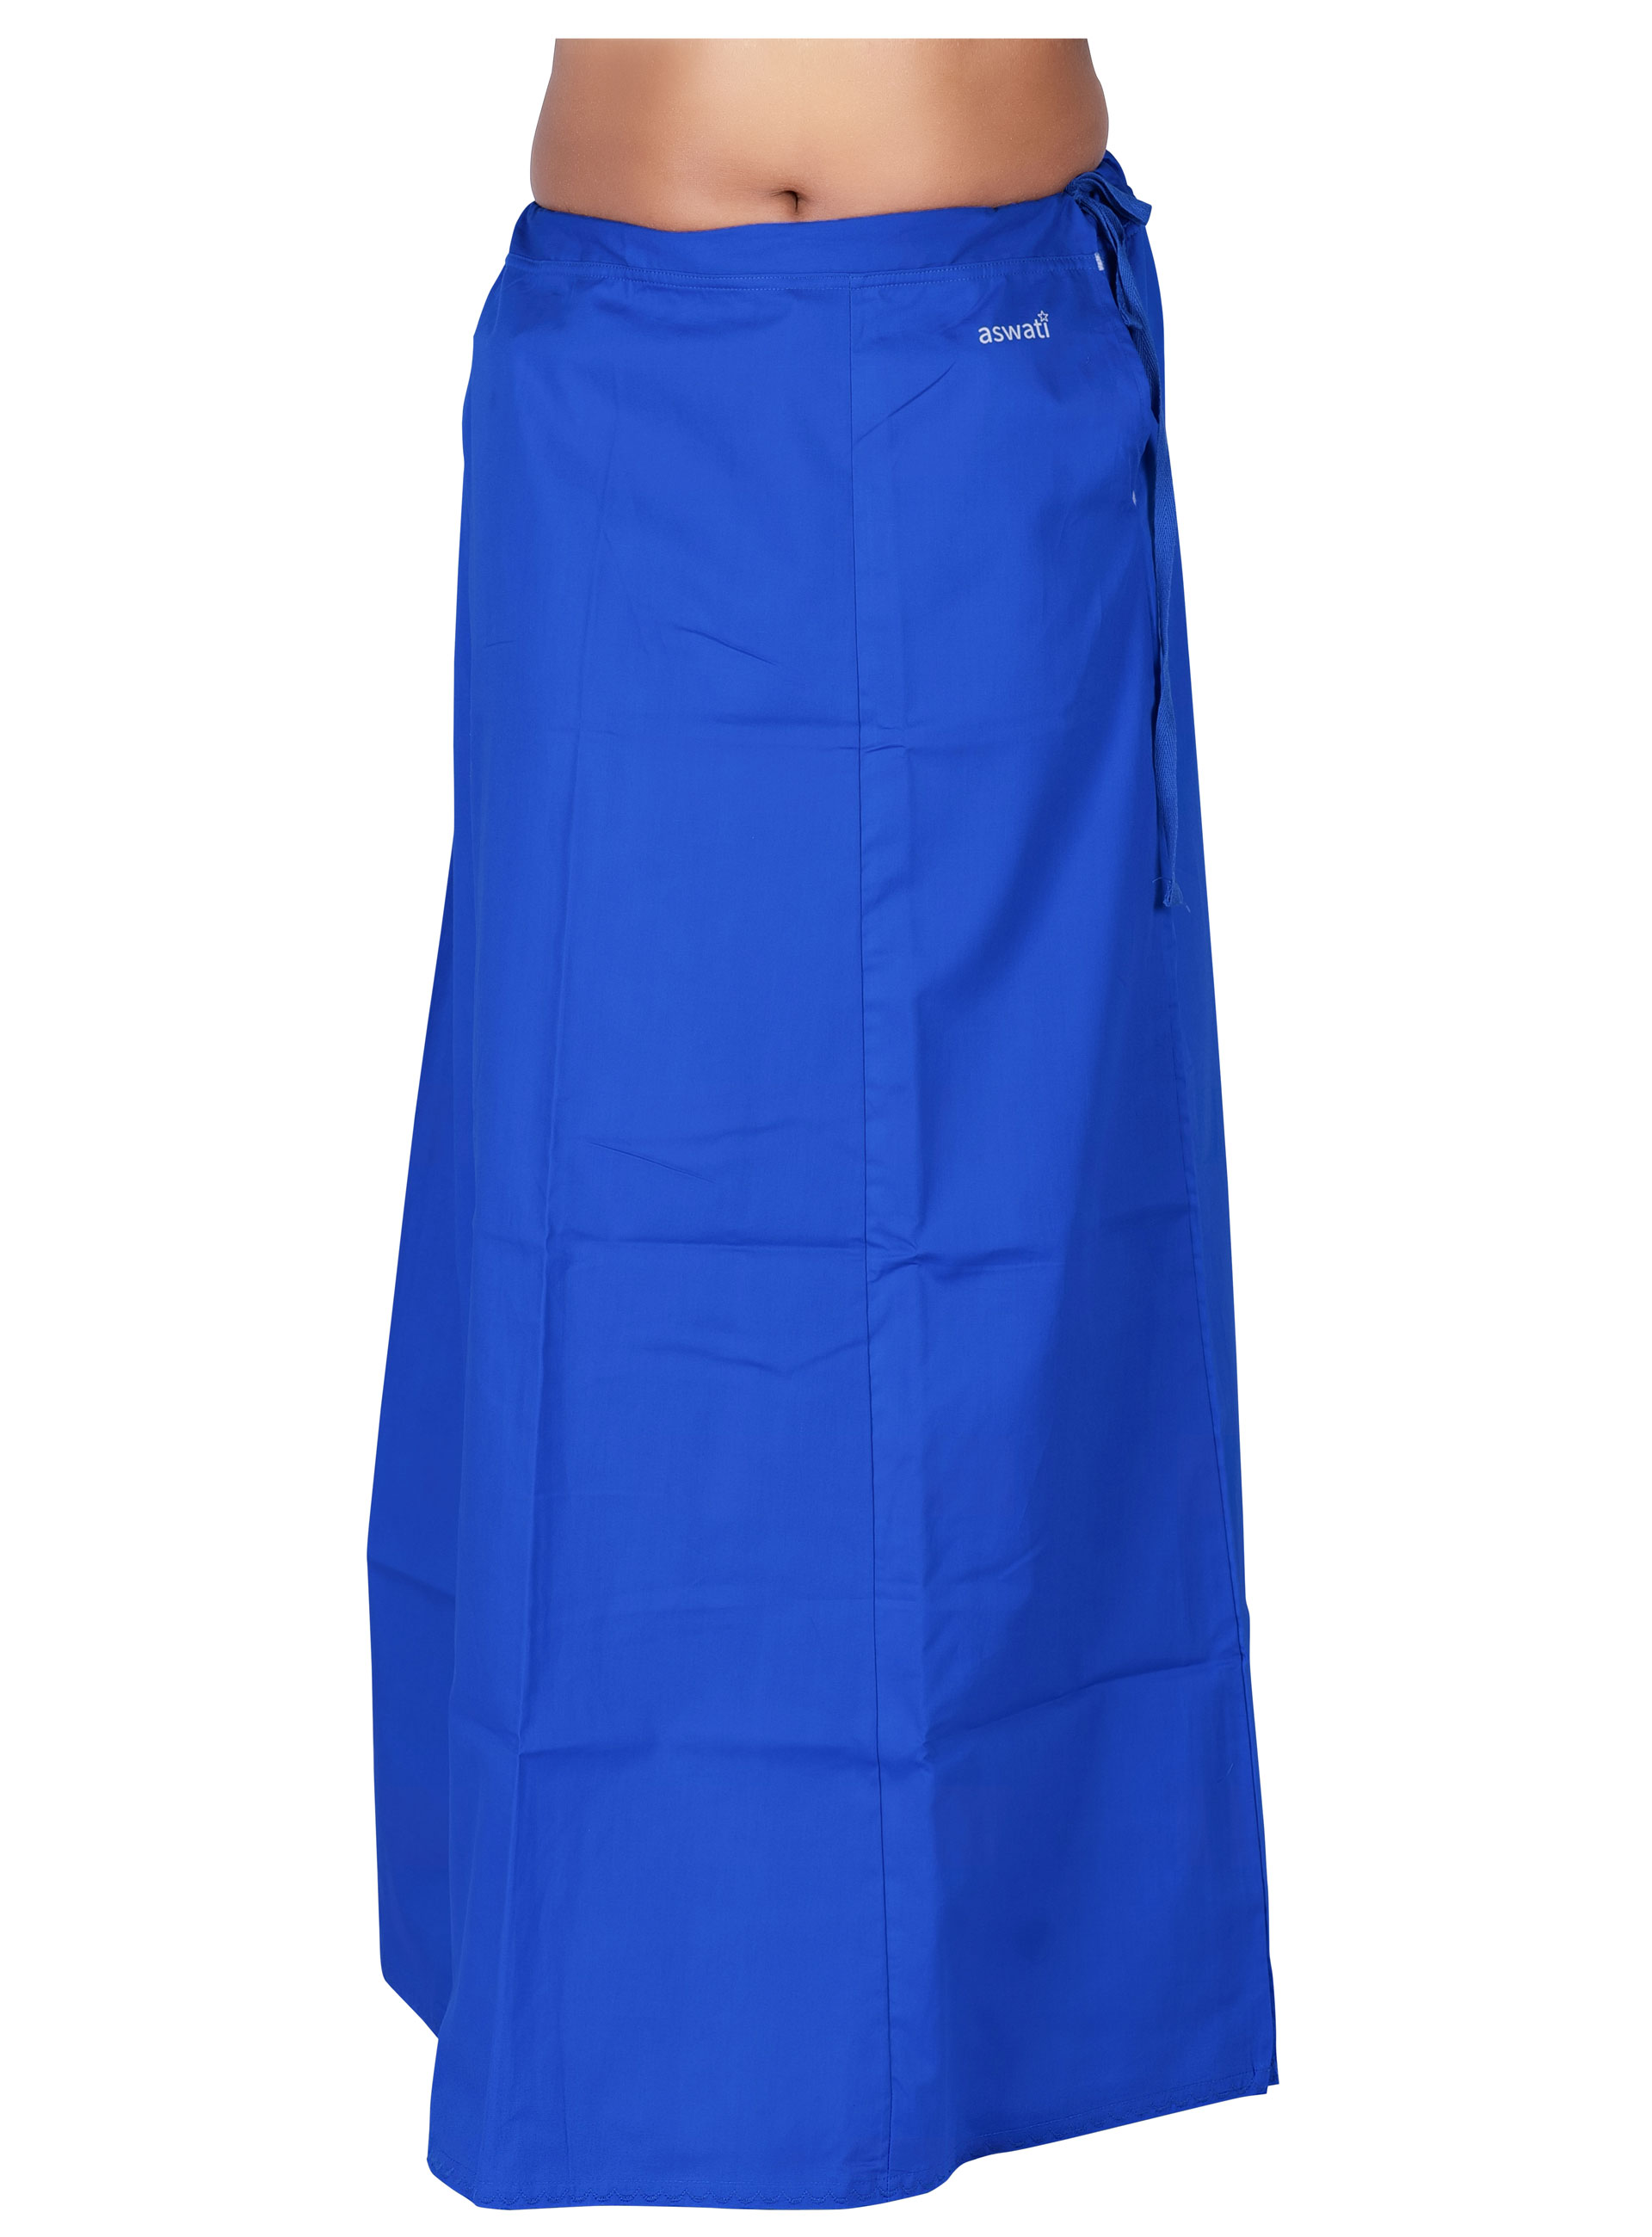 Blue Color Aswati Premium Inskirts (6 PART)